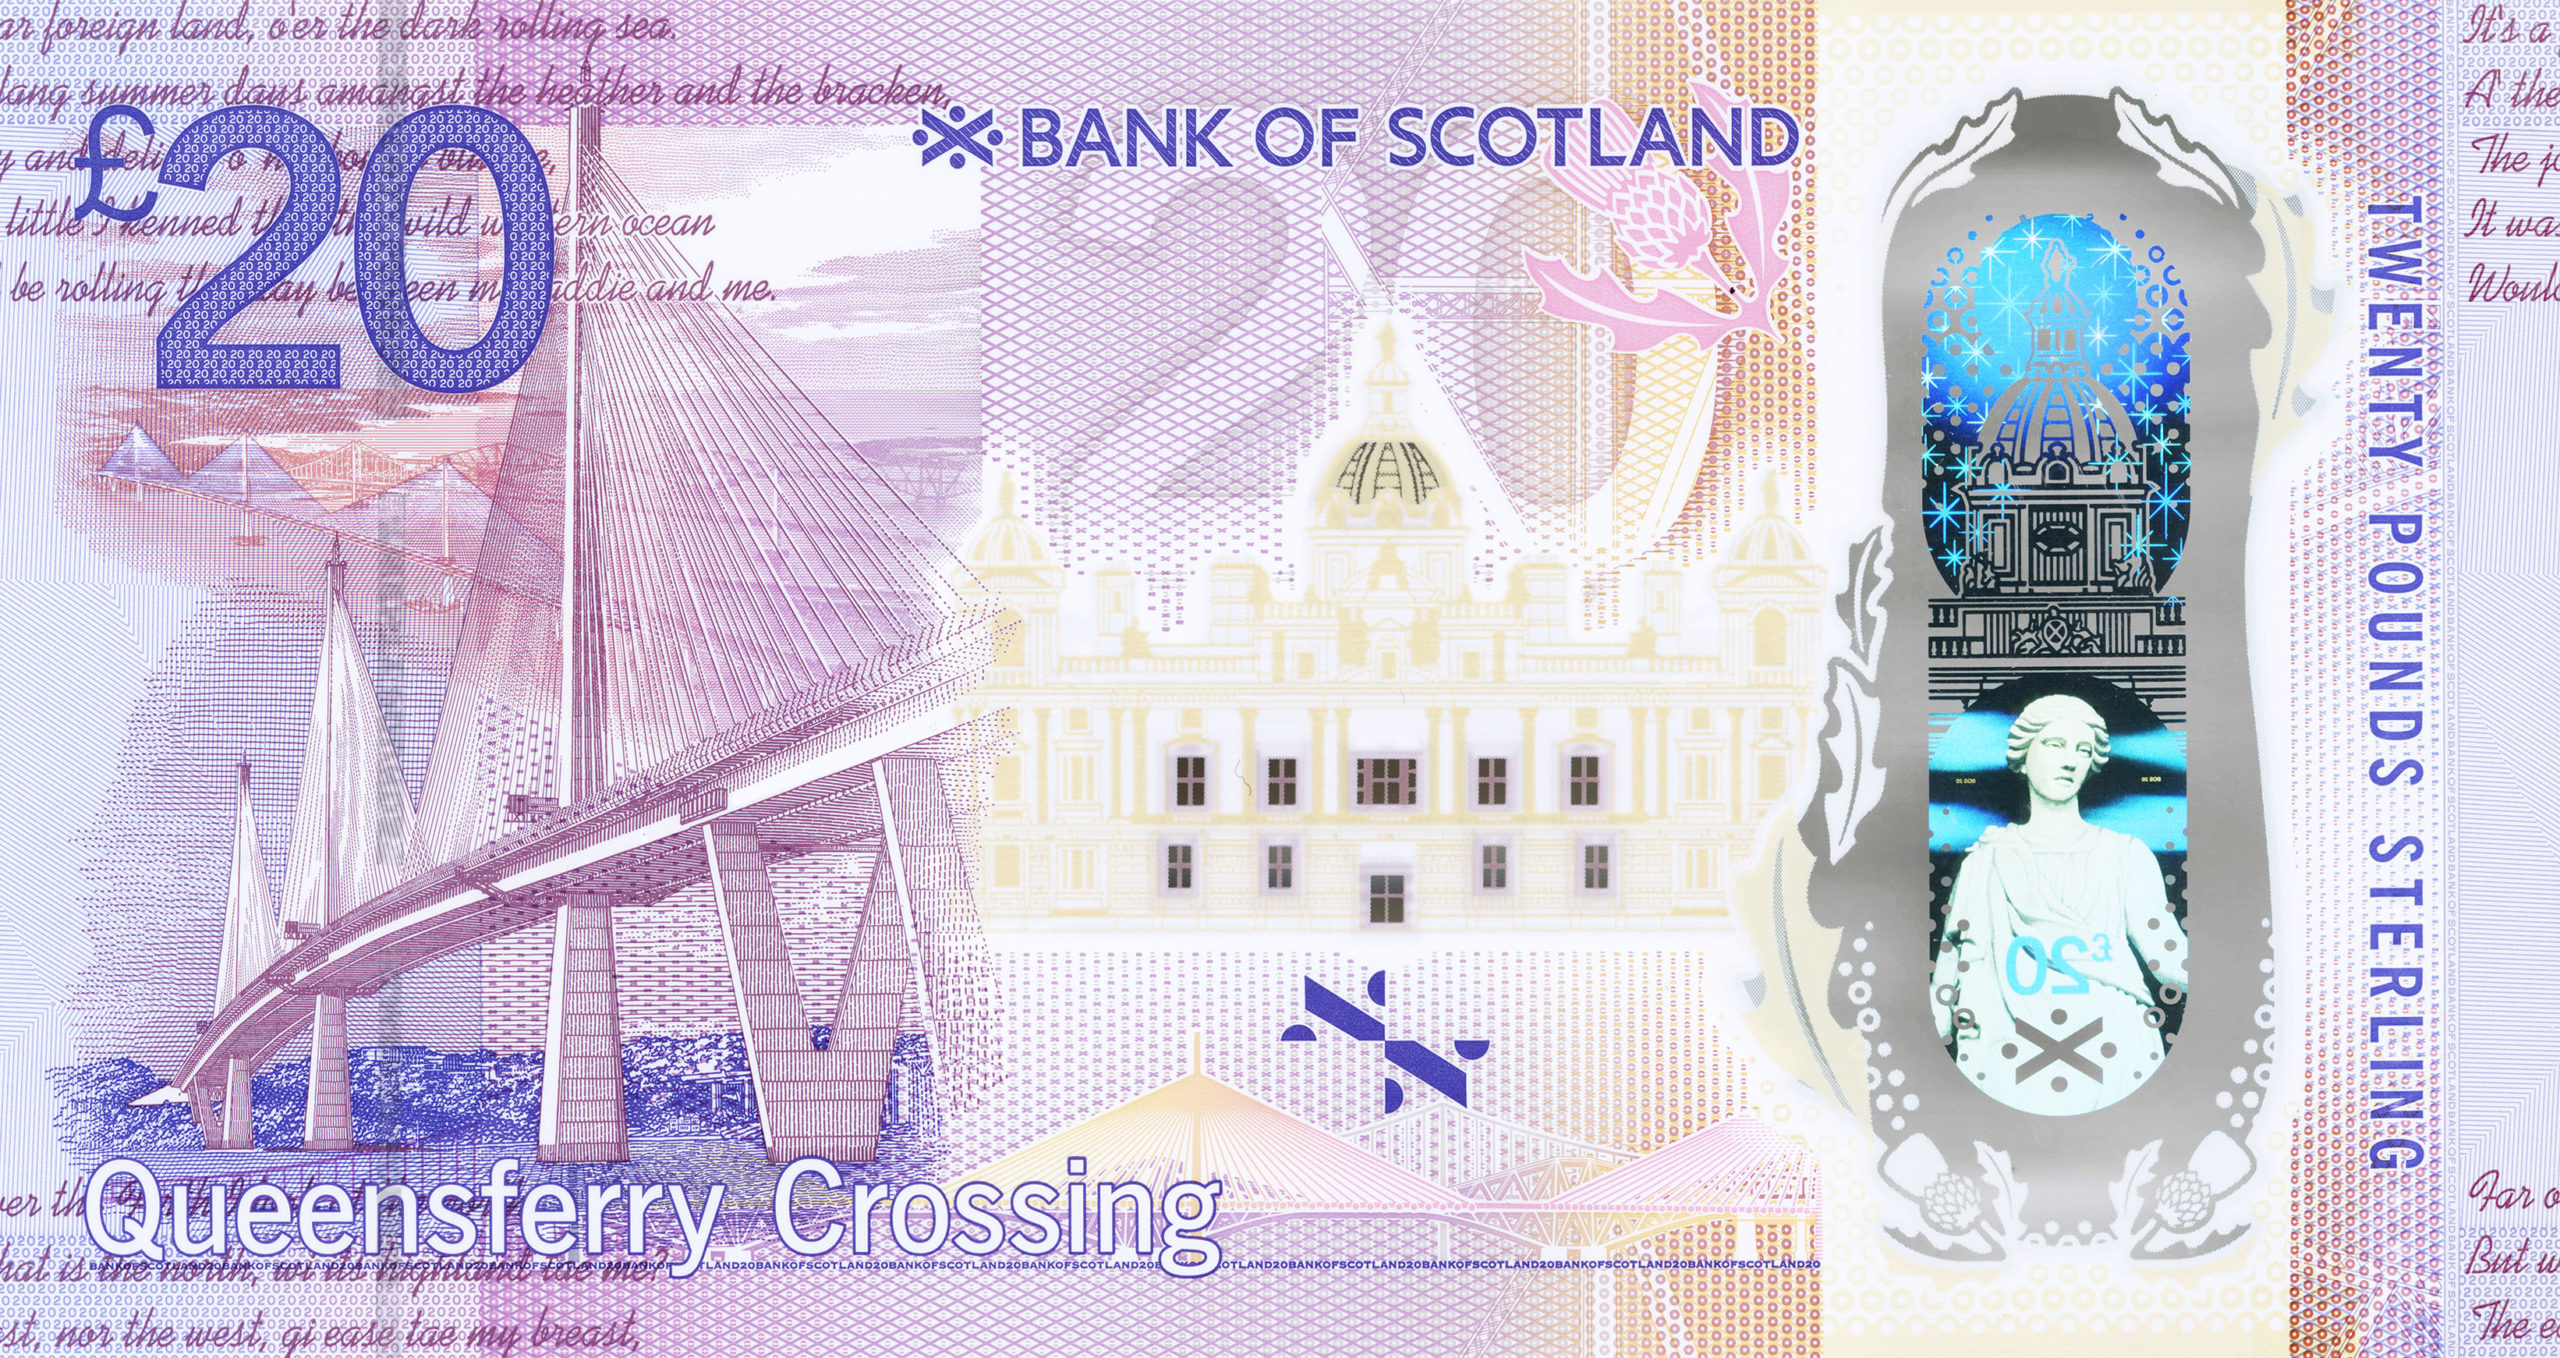 The new note.